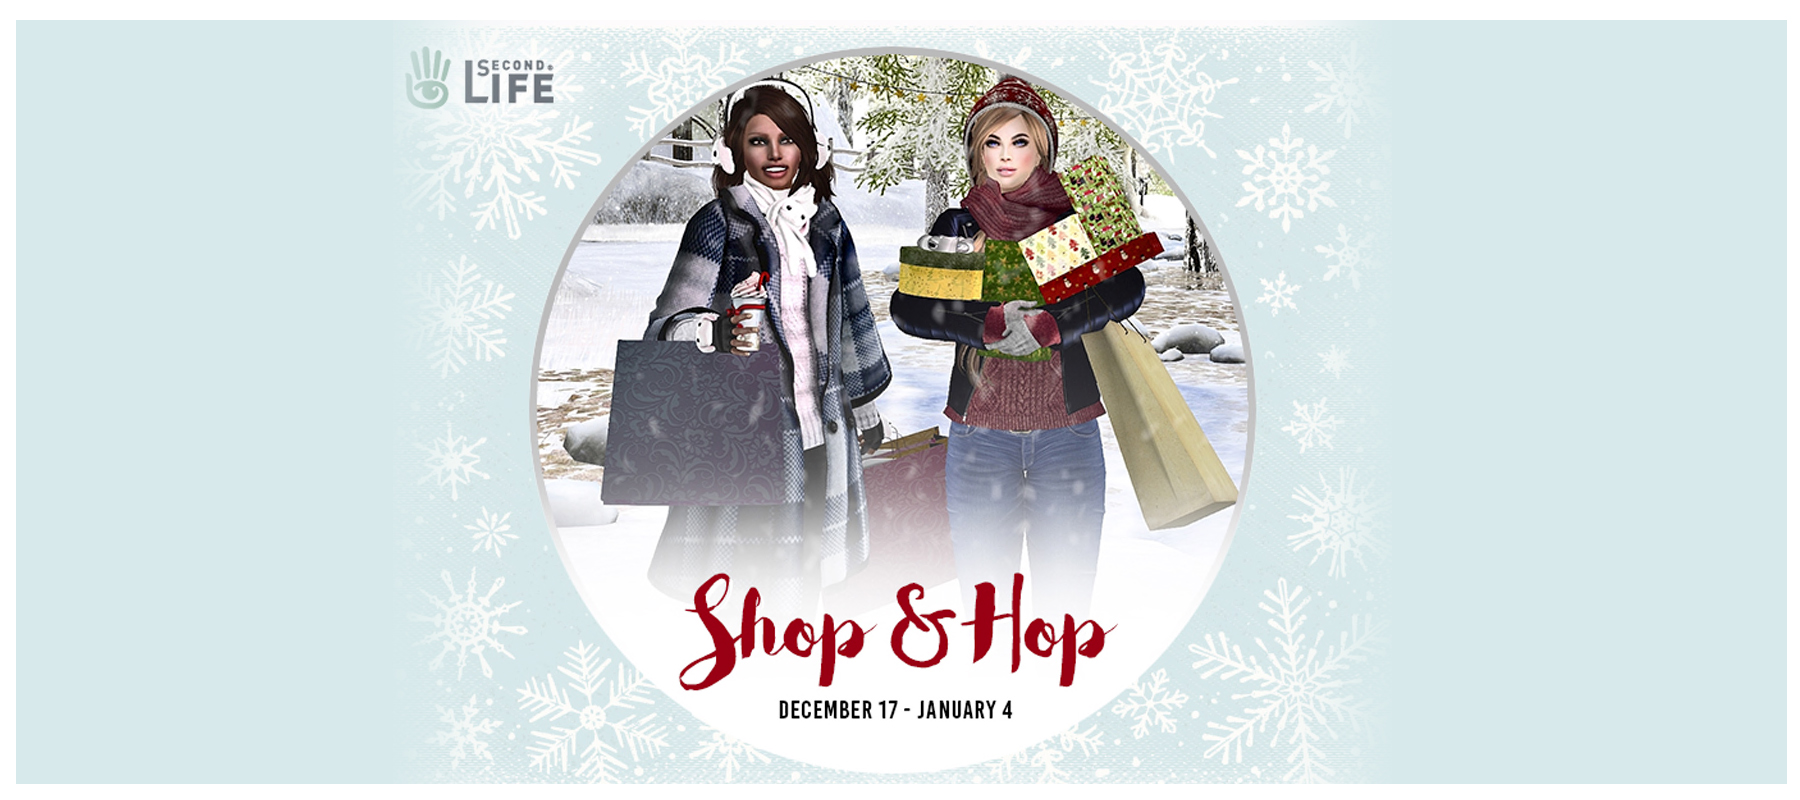 SL Christmas Shop & Hop